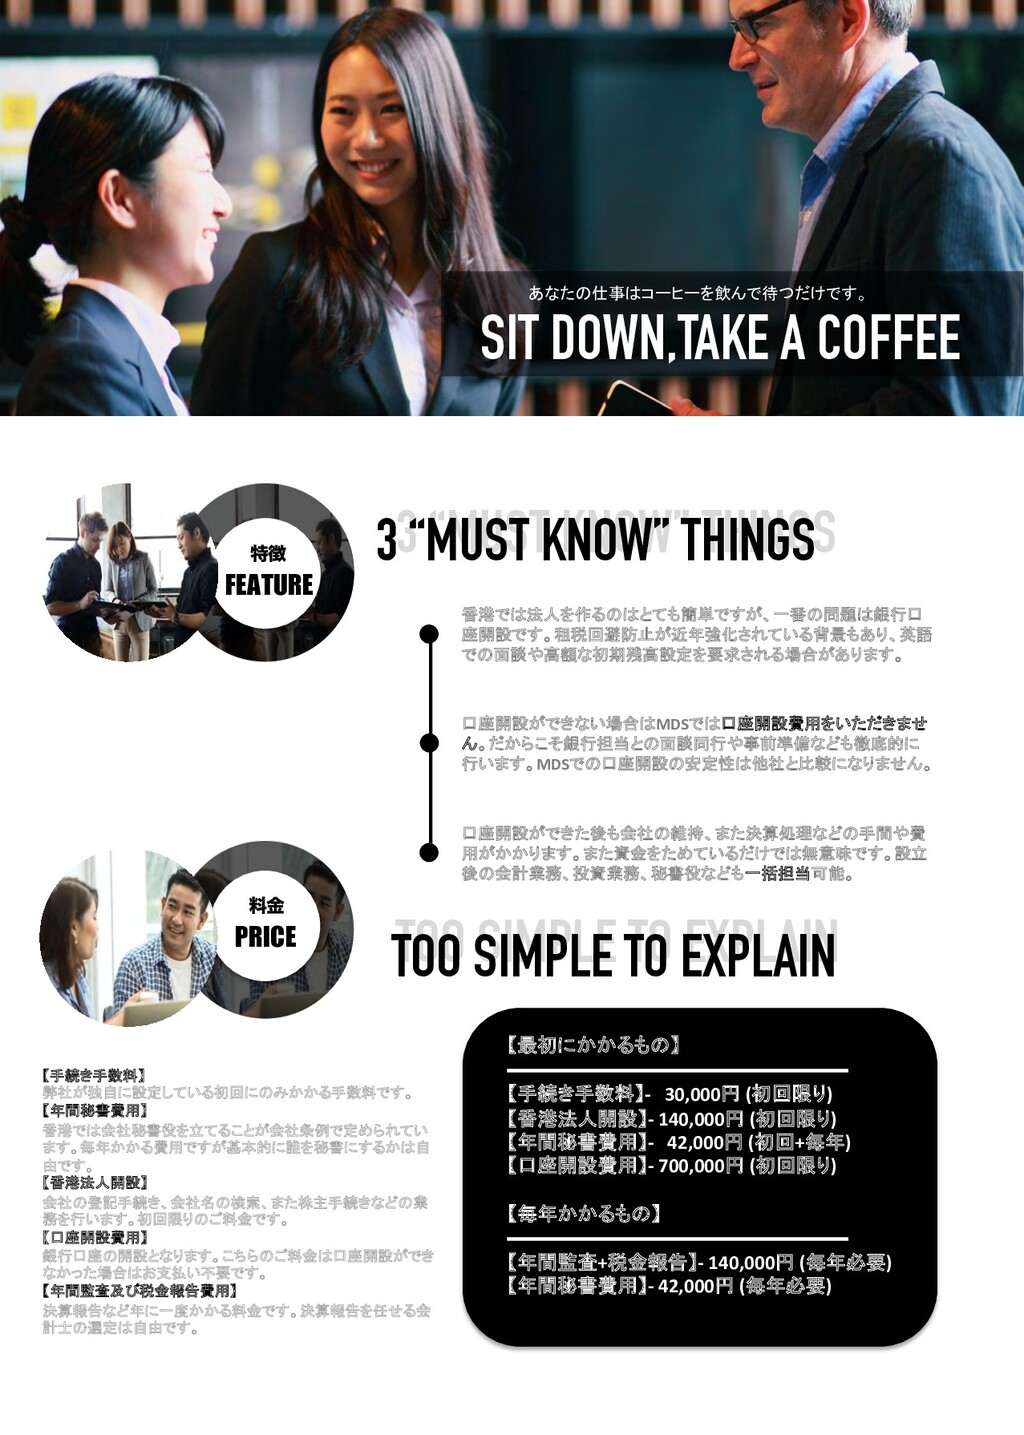 """3 """"MUST KNOW"""" THINGS 3 """"MUST KNOW"""" THINGS TOO S..."""